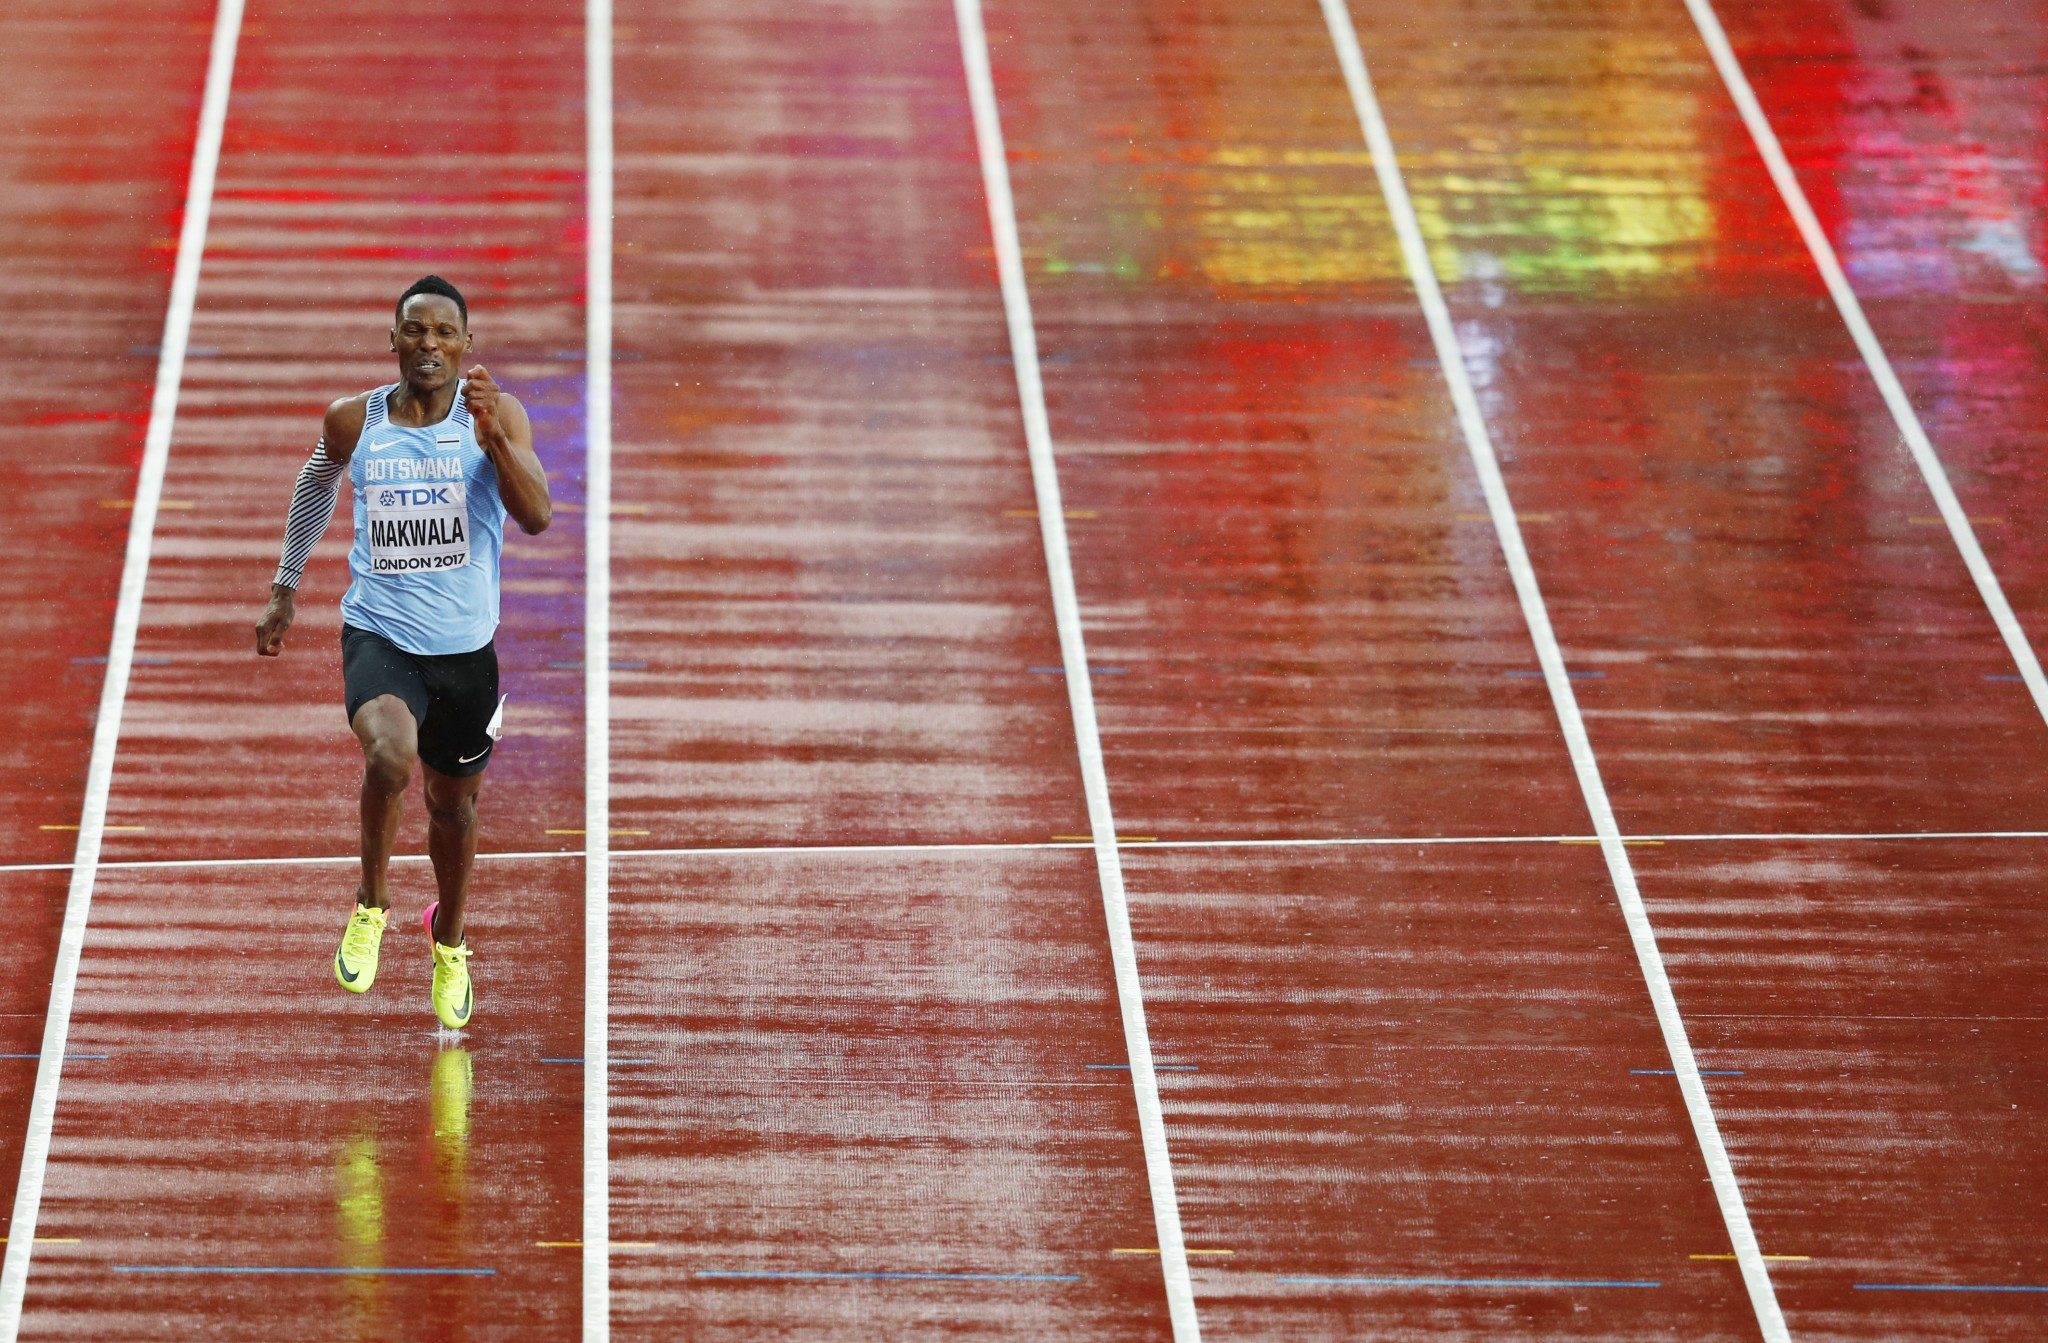 Botswana's Isaac Makwala was made to run his men's 200m heat by himself on Wednesday at the IAAF World Championships in London ©Getty Images